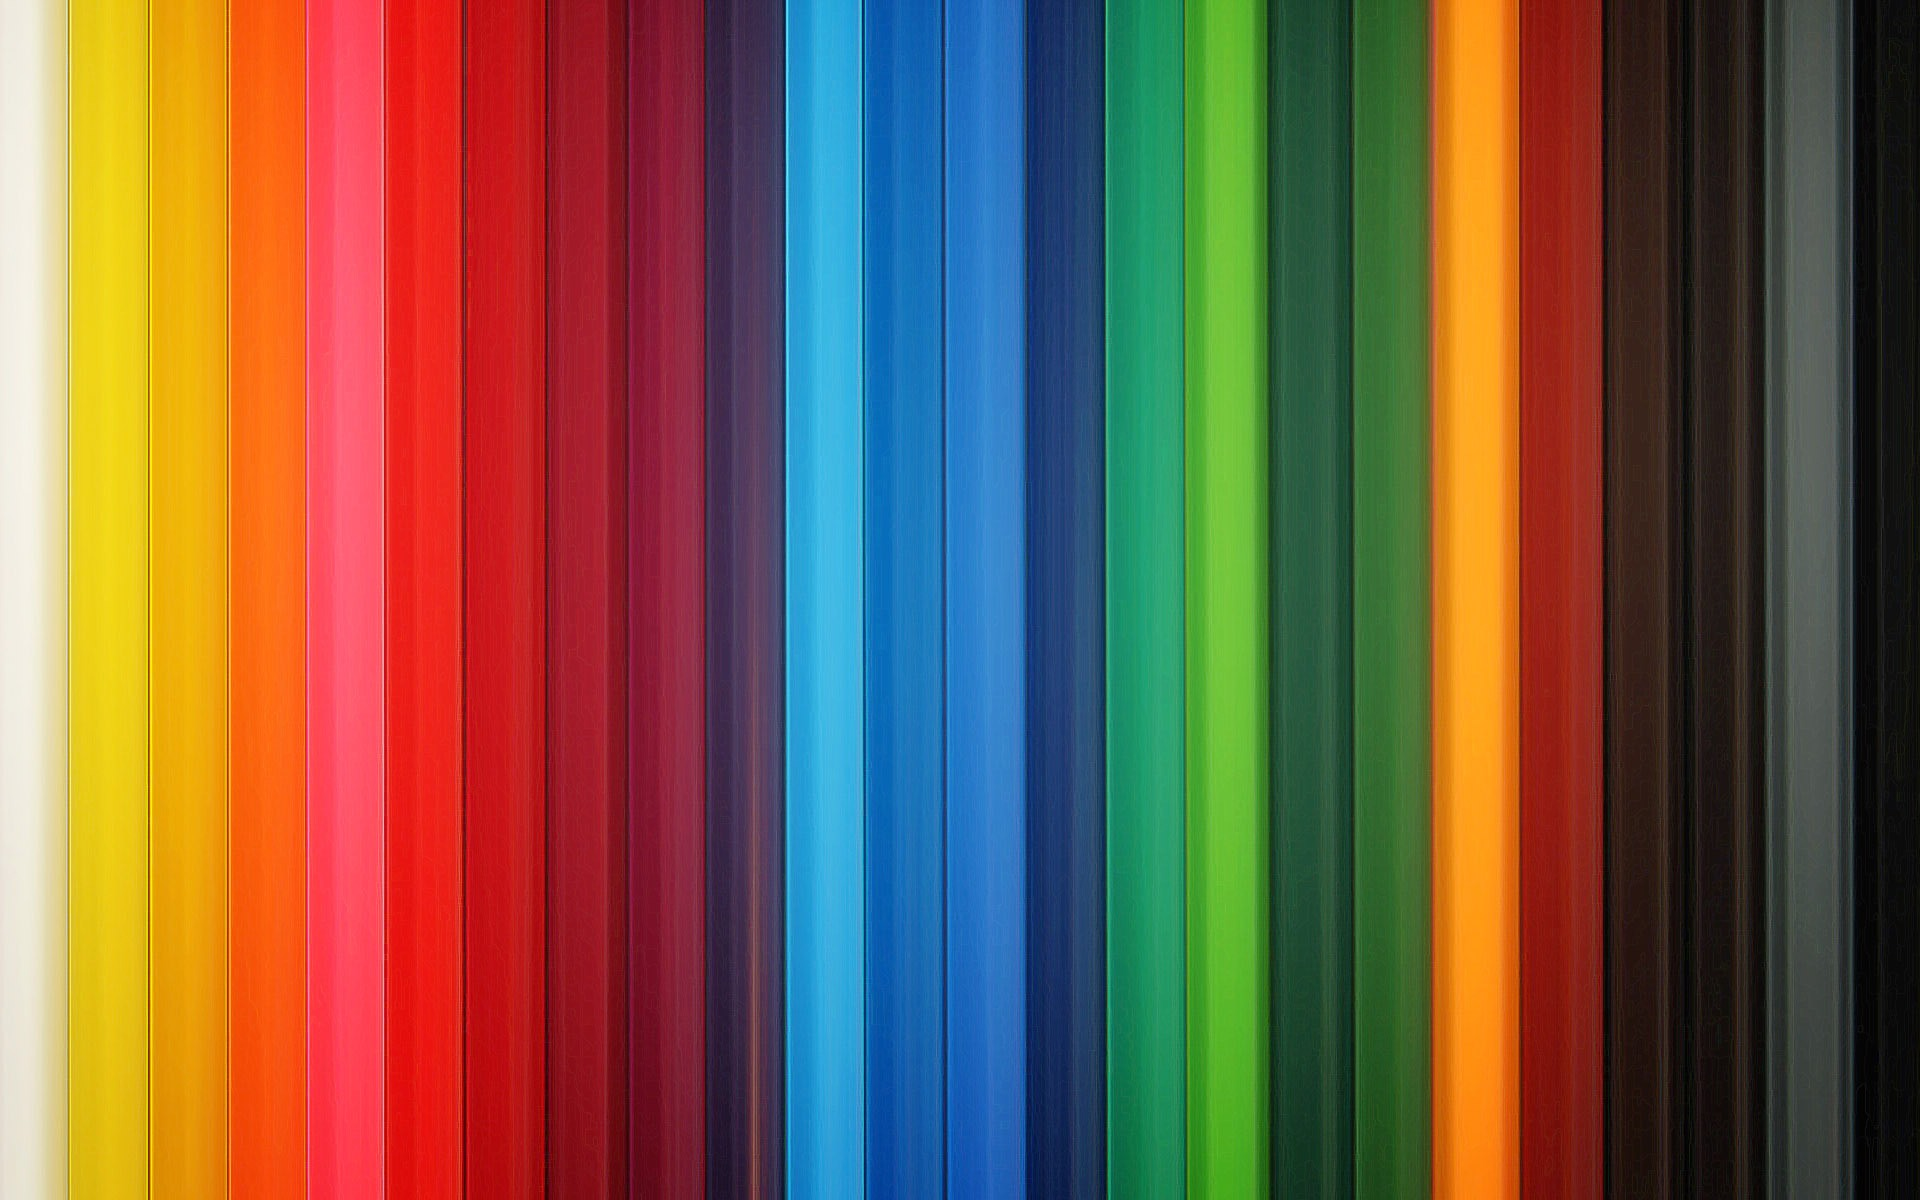 Color Stripes desktop wallpaper 1920x1200